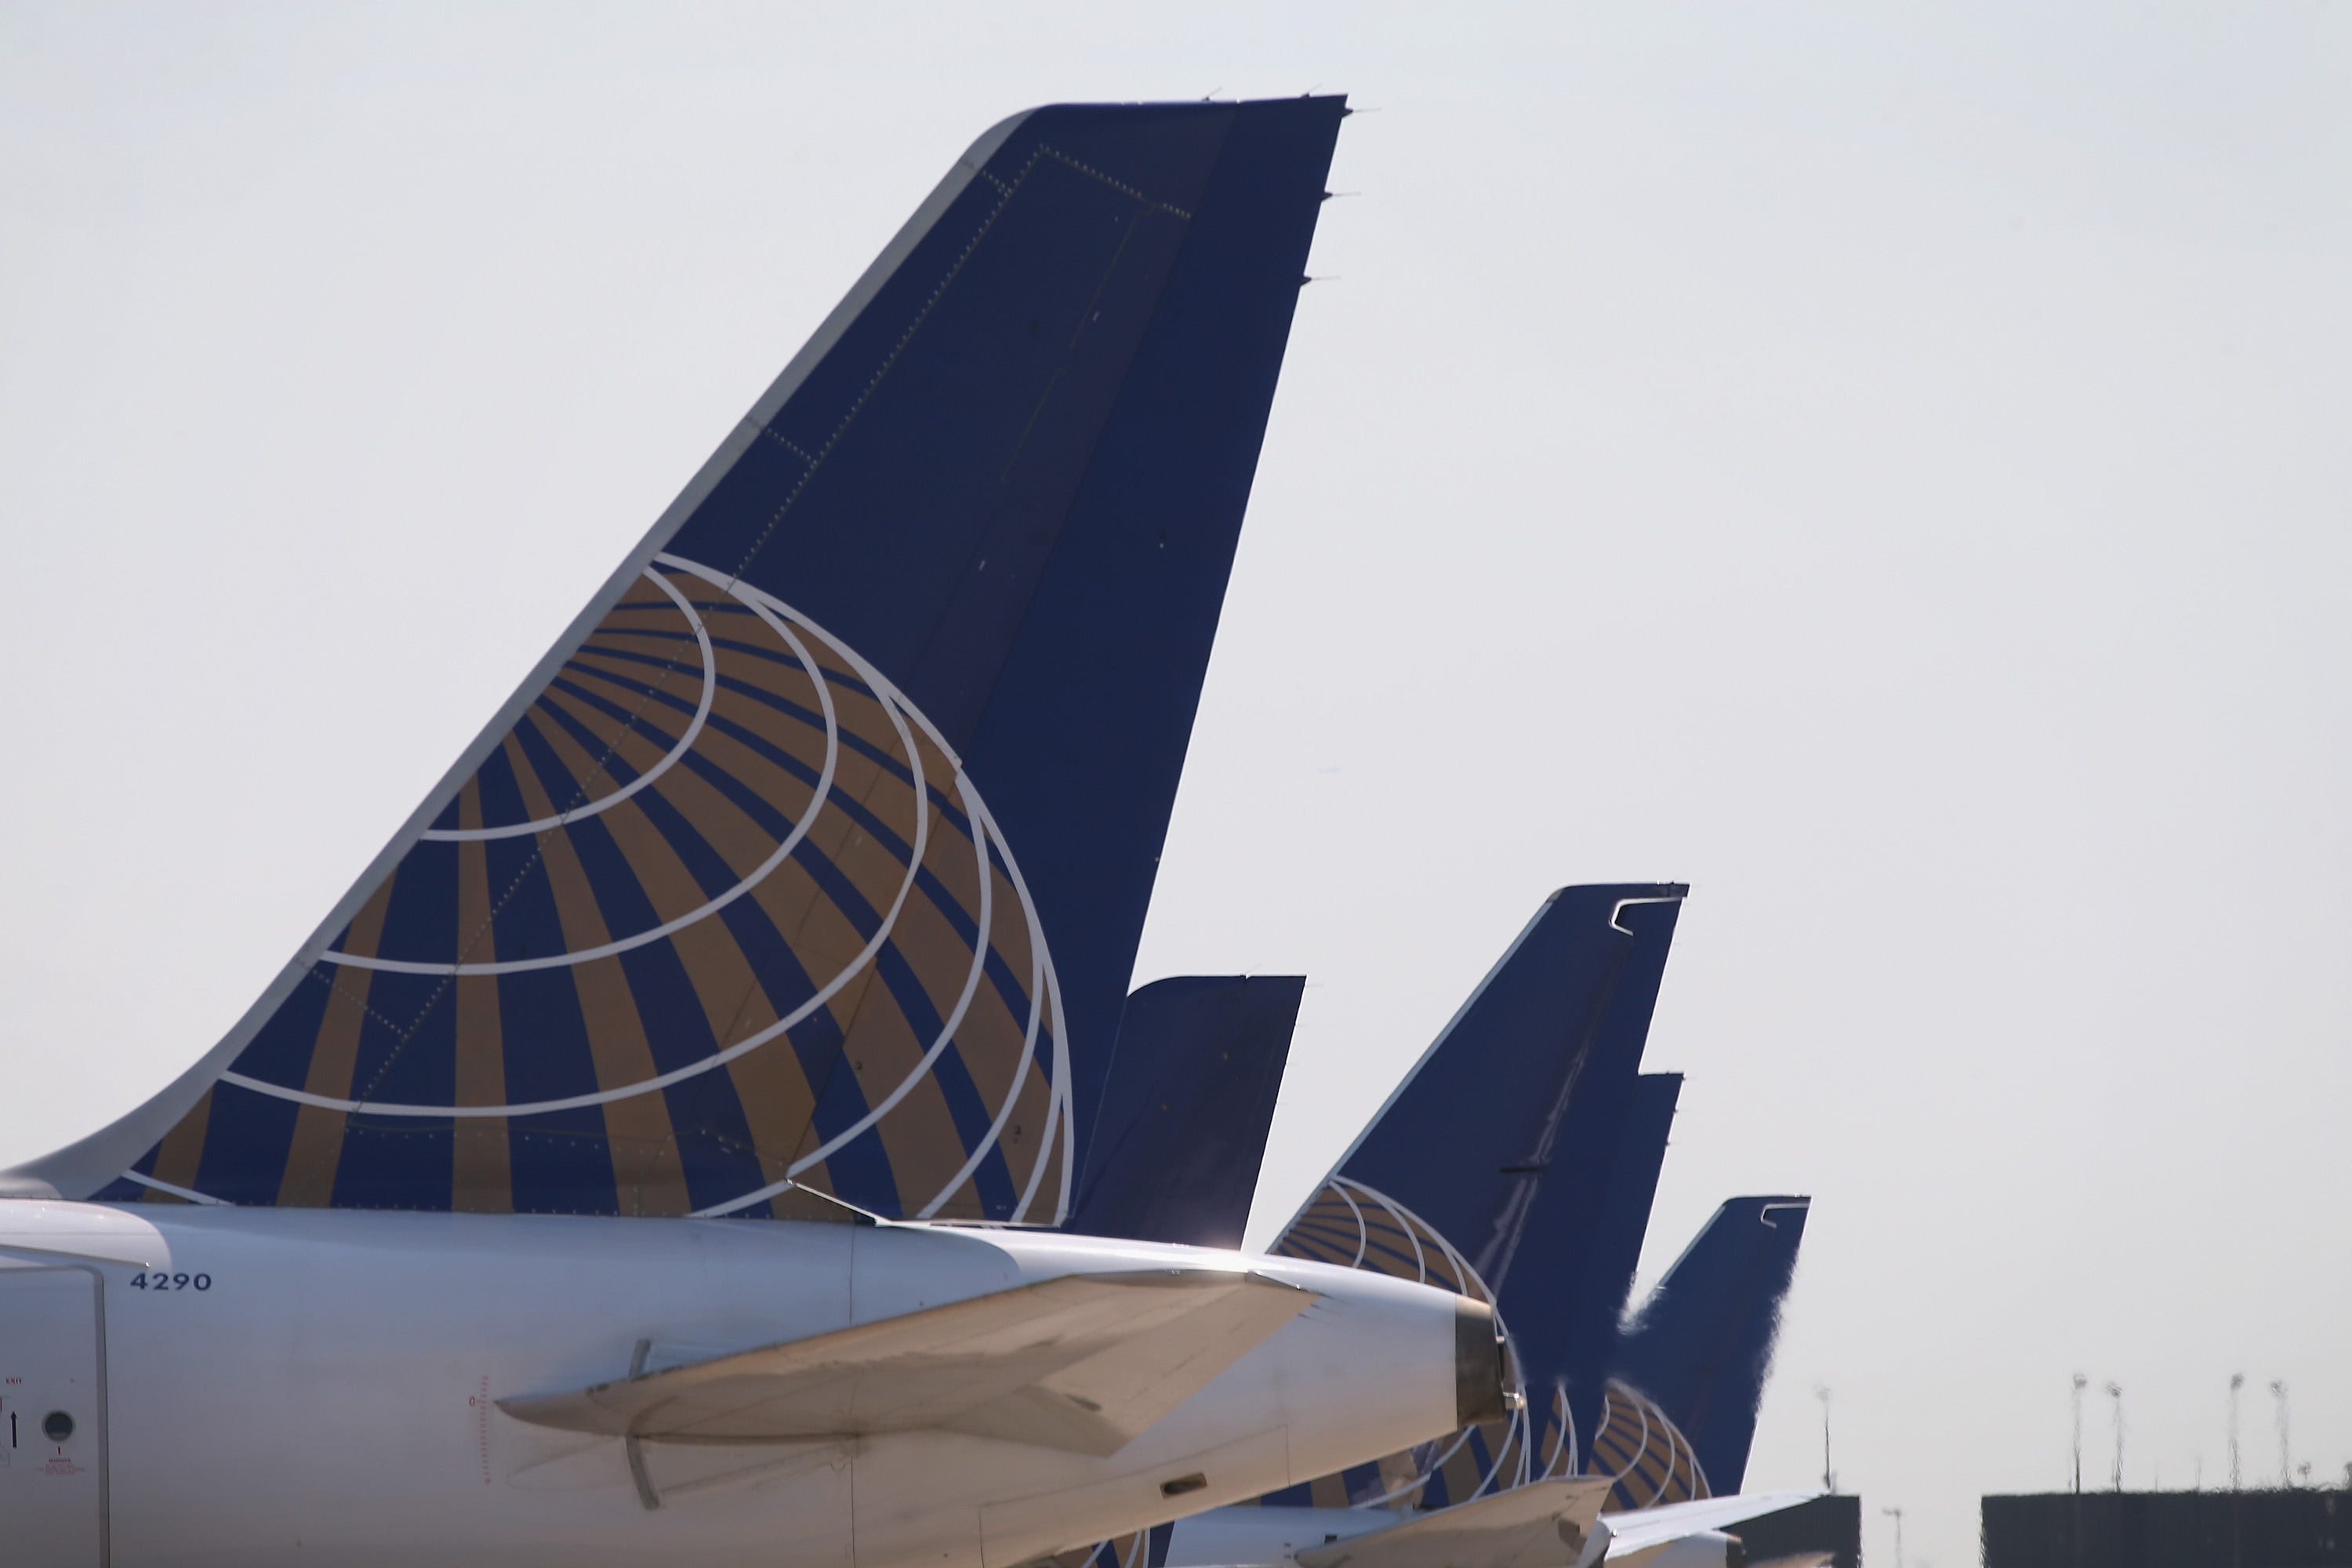 The Sept. 19, 2014 file photo shows a United Airlines jet at O'Hare International Airport in Chicago.